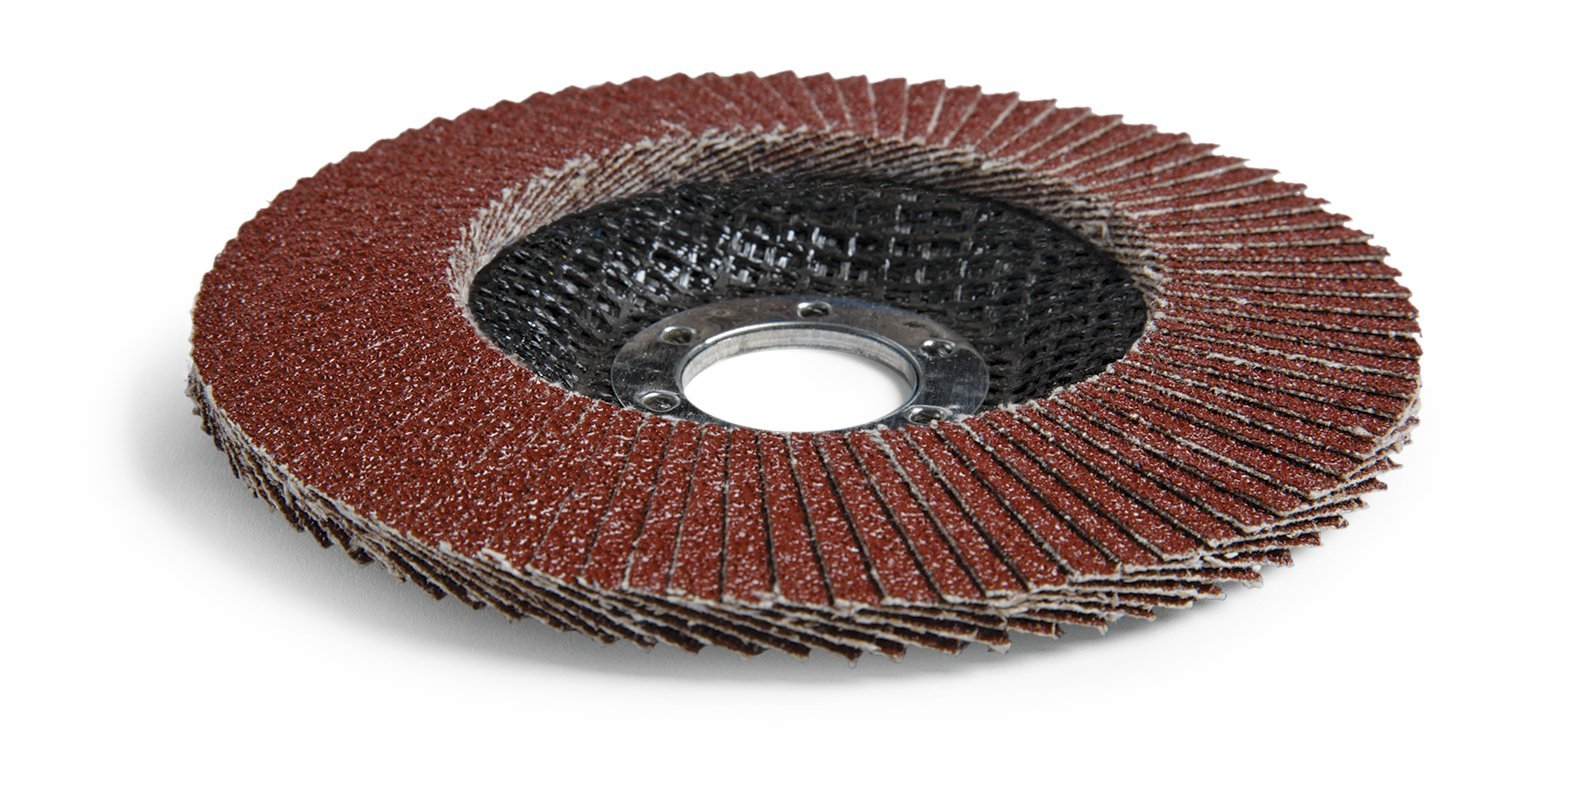 3M Cubitron II Flap Disc 967A, Type 29, Cloth, Ceramic Grain, 4-1/2'' Diameter, 40+ Grit, Brown (Pack of 10)